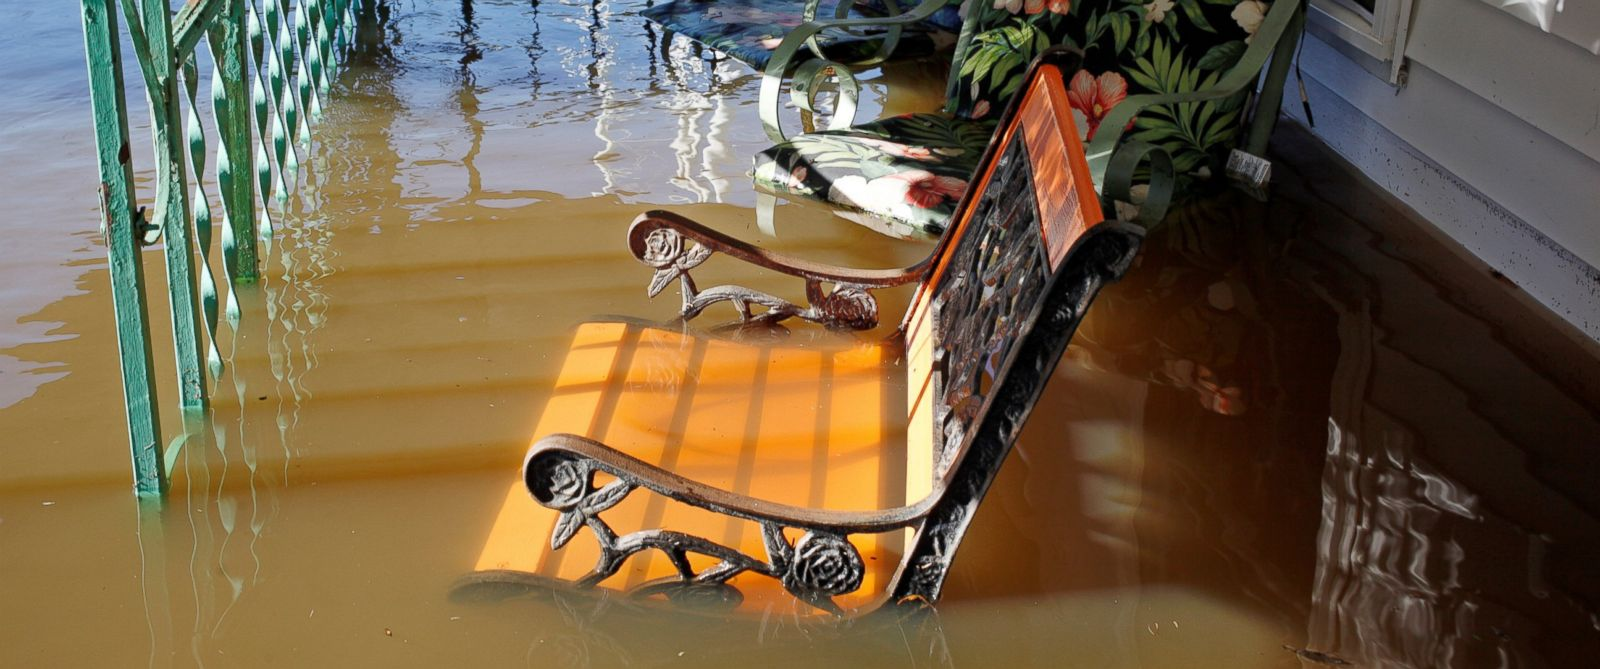 PHOTO: Flood waters from the swollen Tar River rise into a residential porch in the aftermath of Hurricane Matthew, in Tarboro, North Carolina, on Oct. 13, 2016.